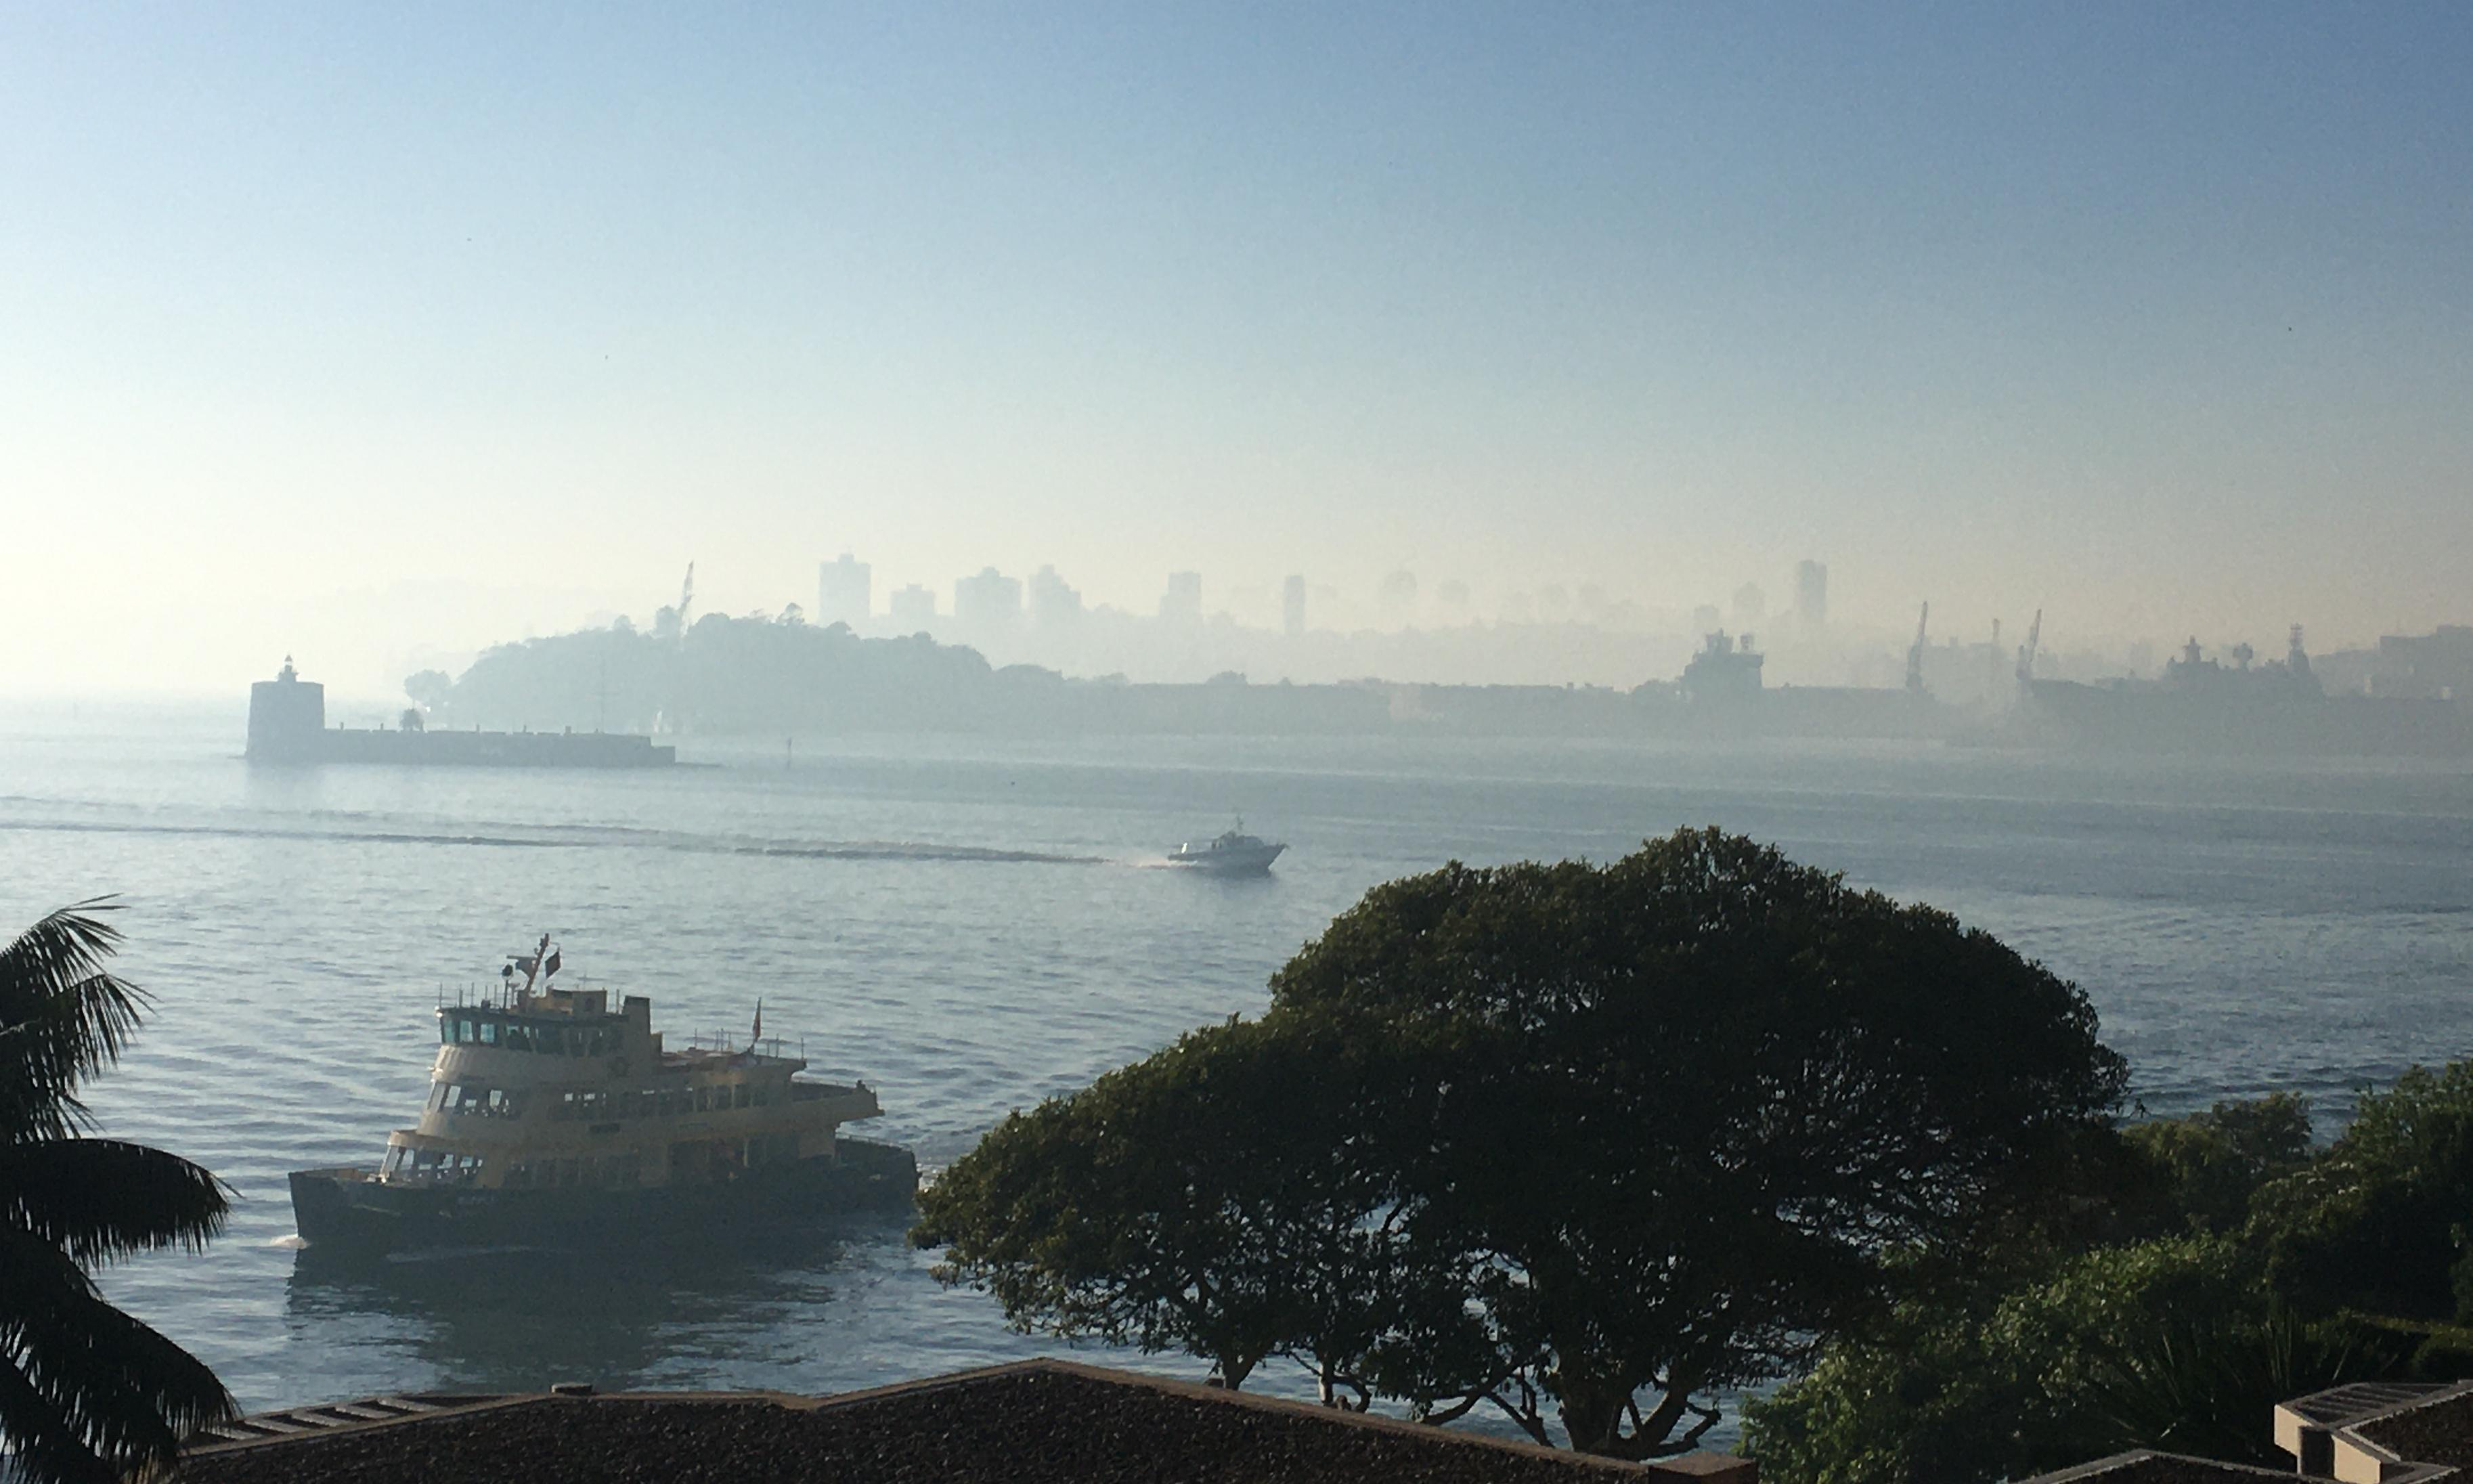 Sydney smoke: city covered in thick haze as more than 50 bushfires burn across NSW